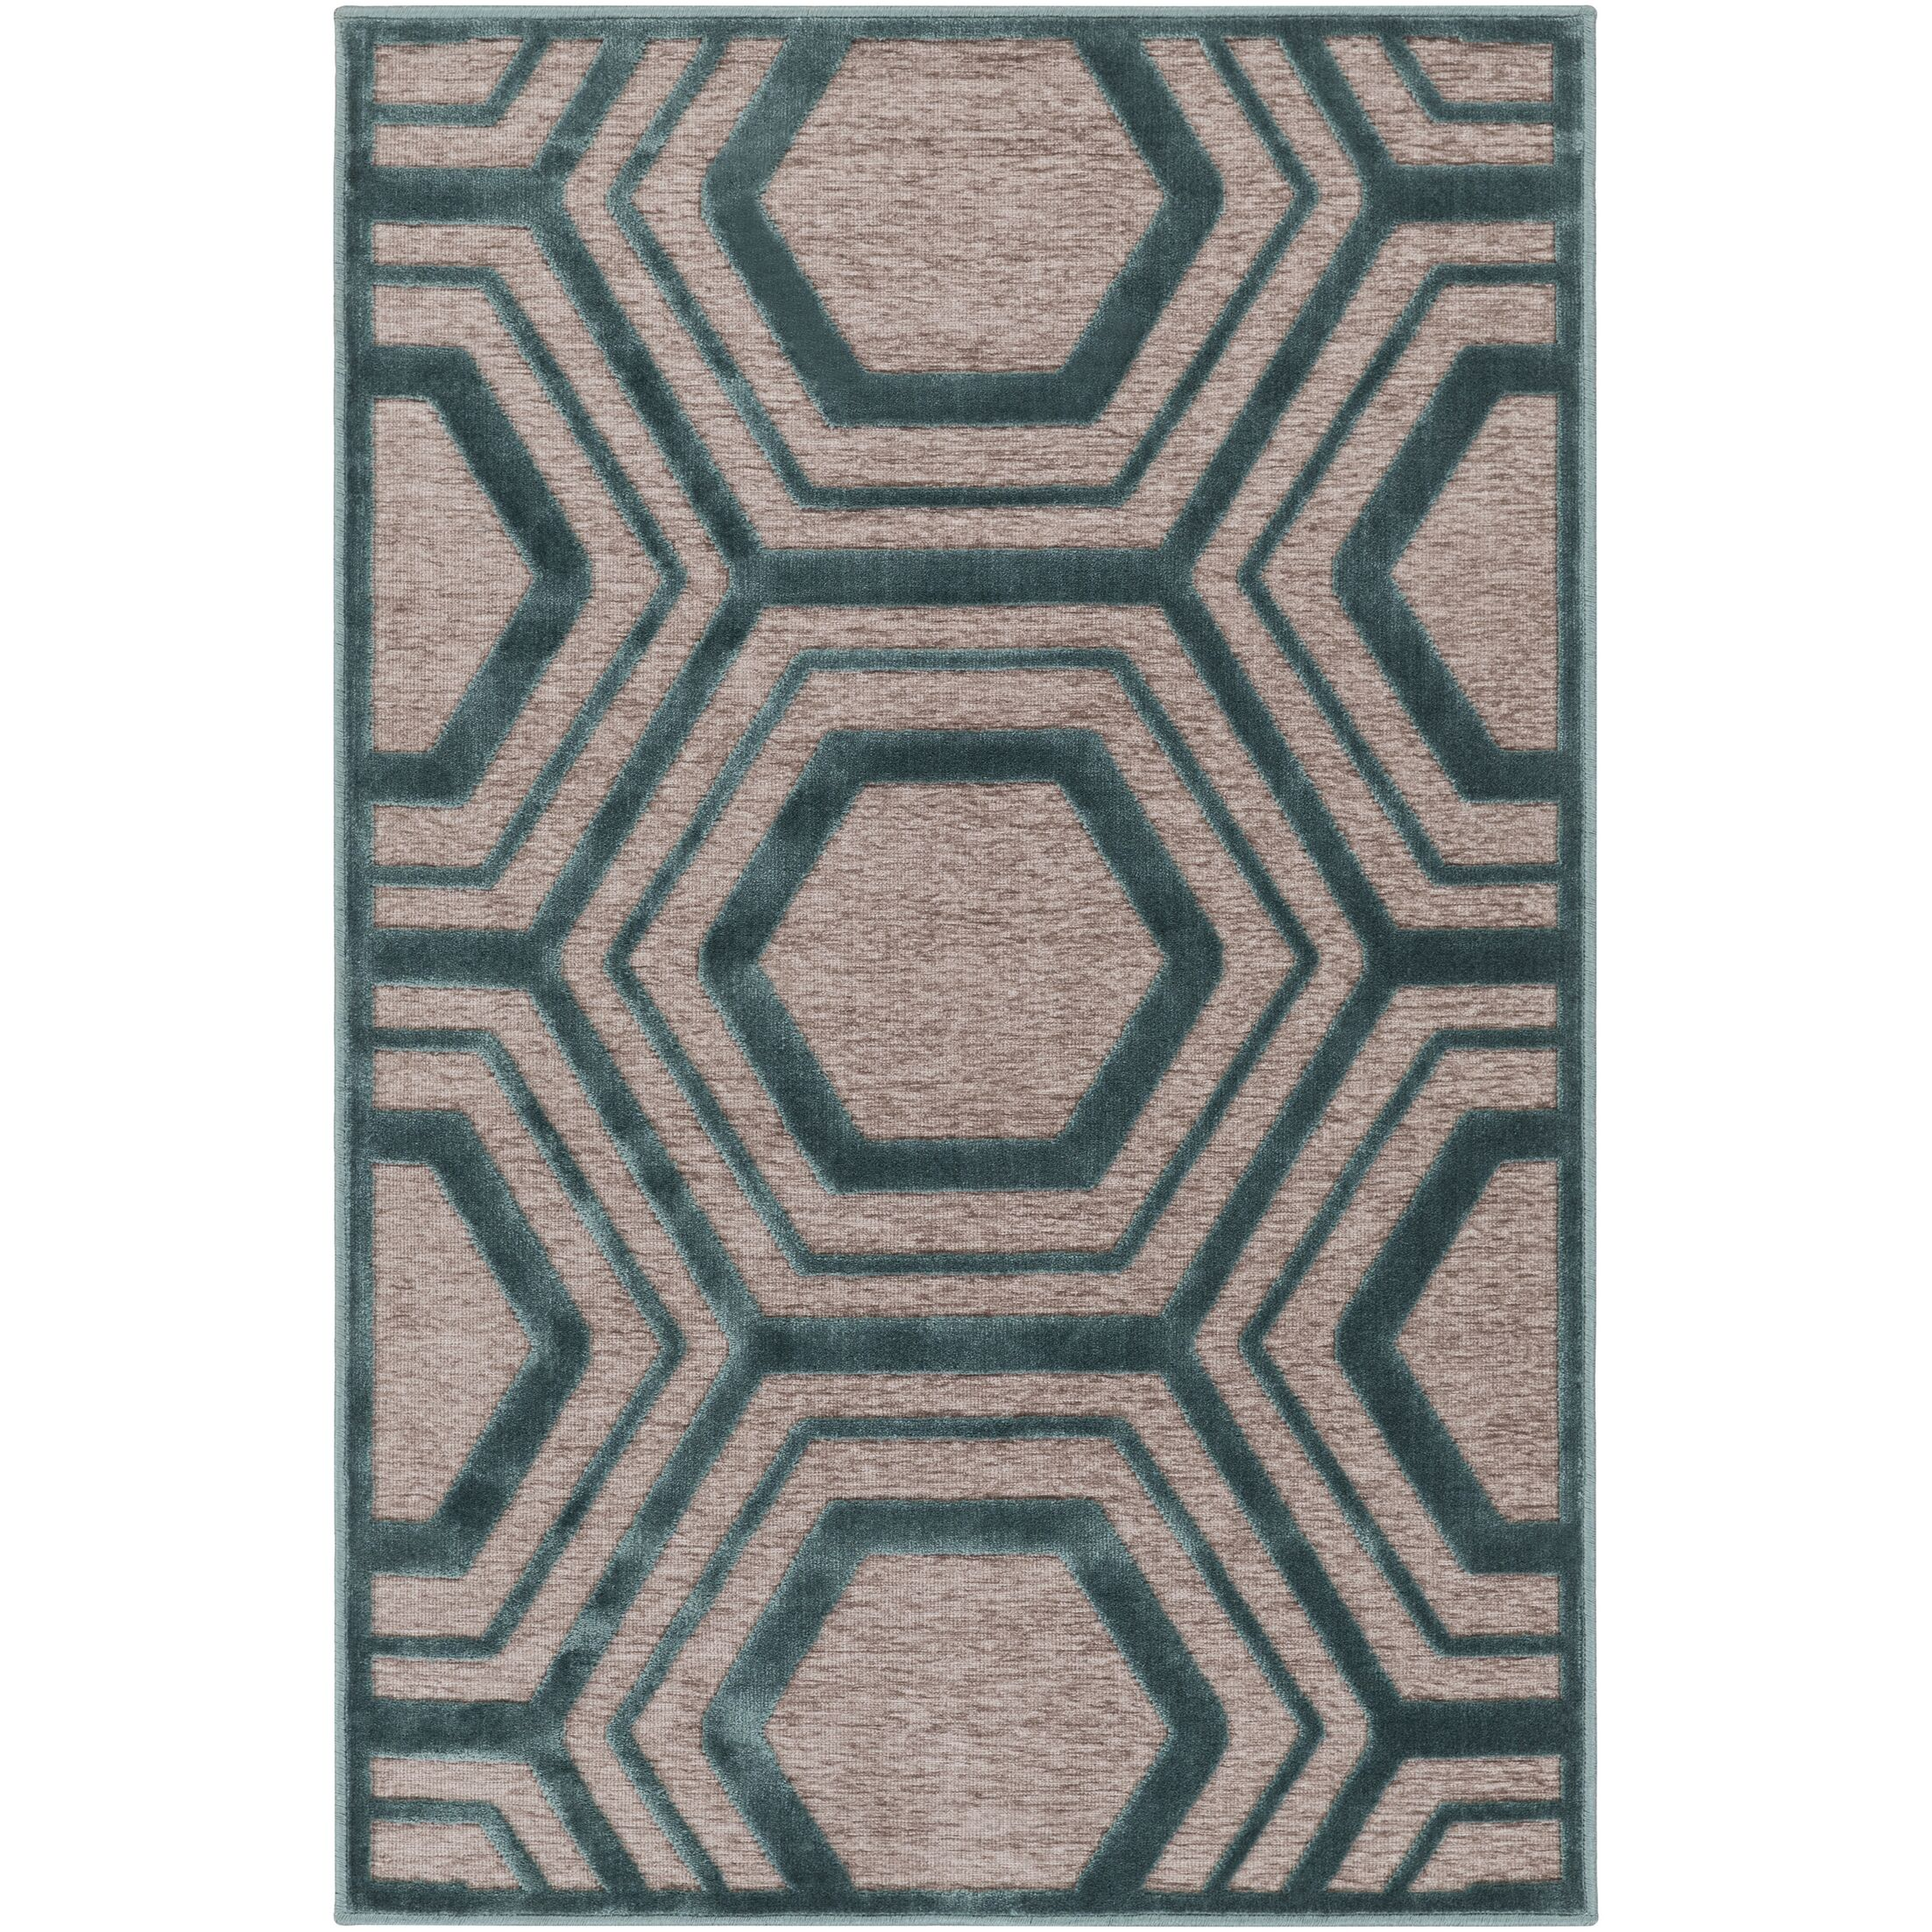 Springdale Green/Brown Area Rug Rug Size: Rectangle 5'2